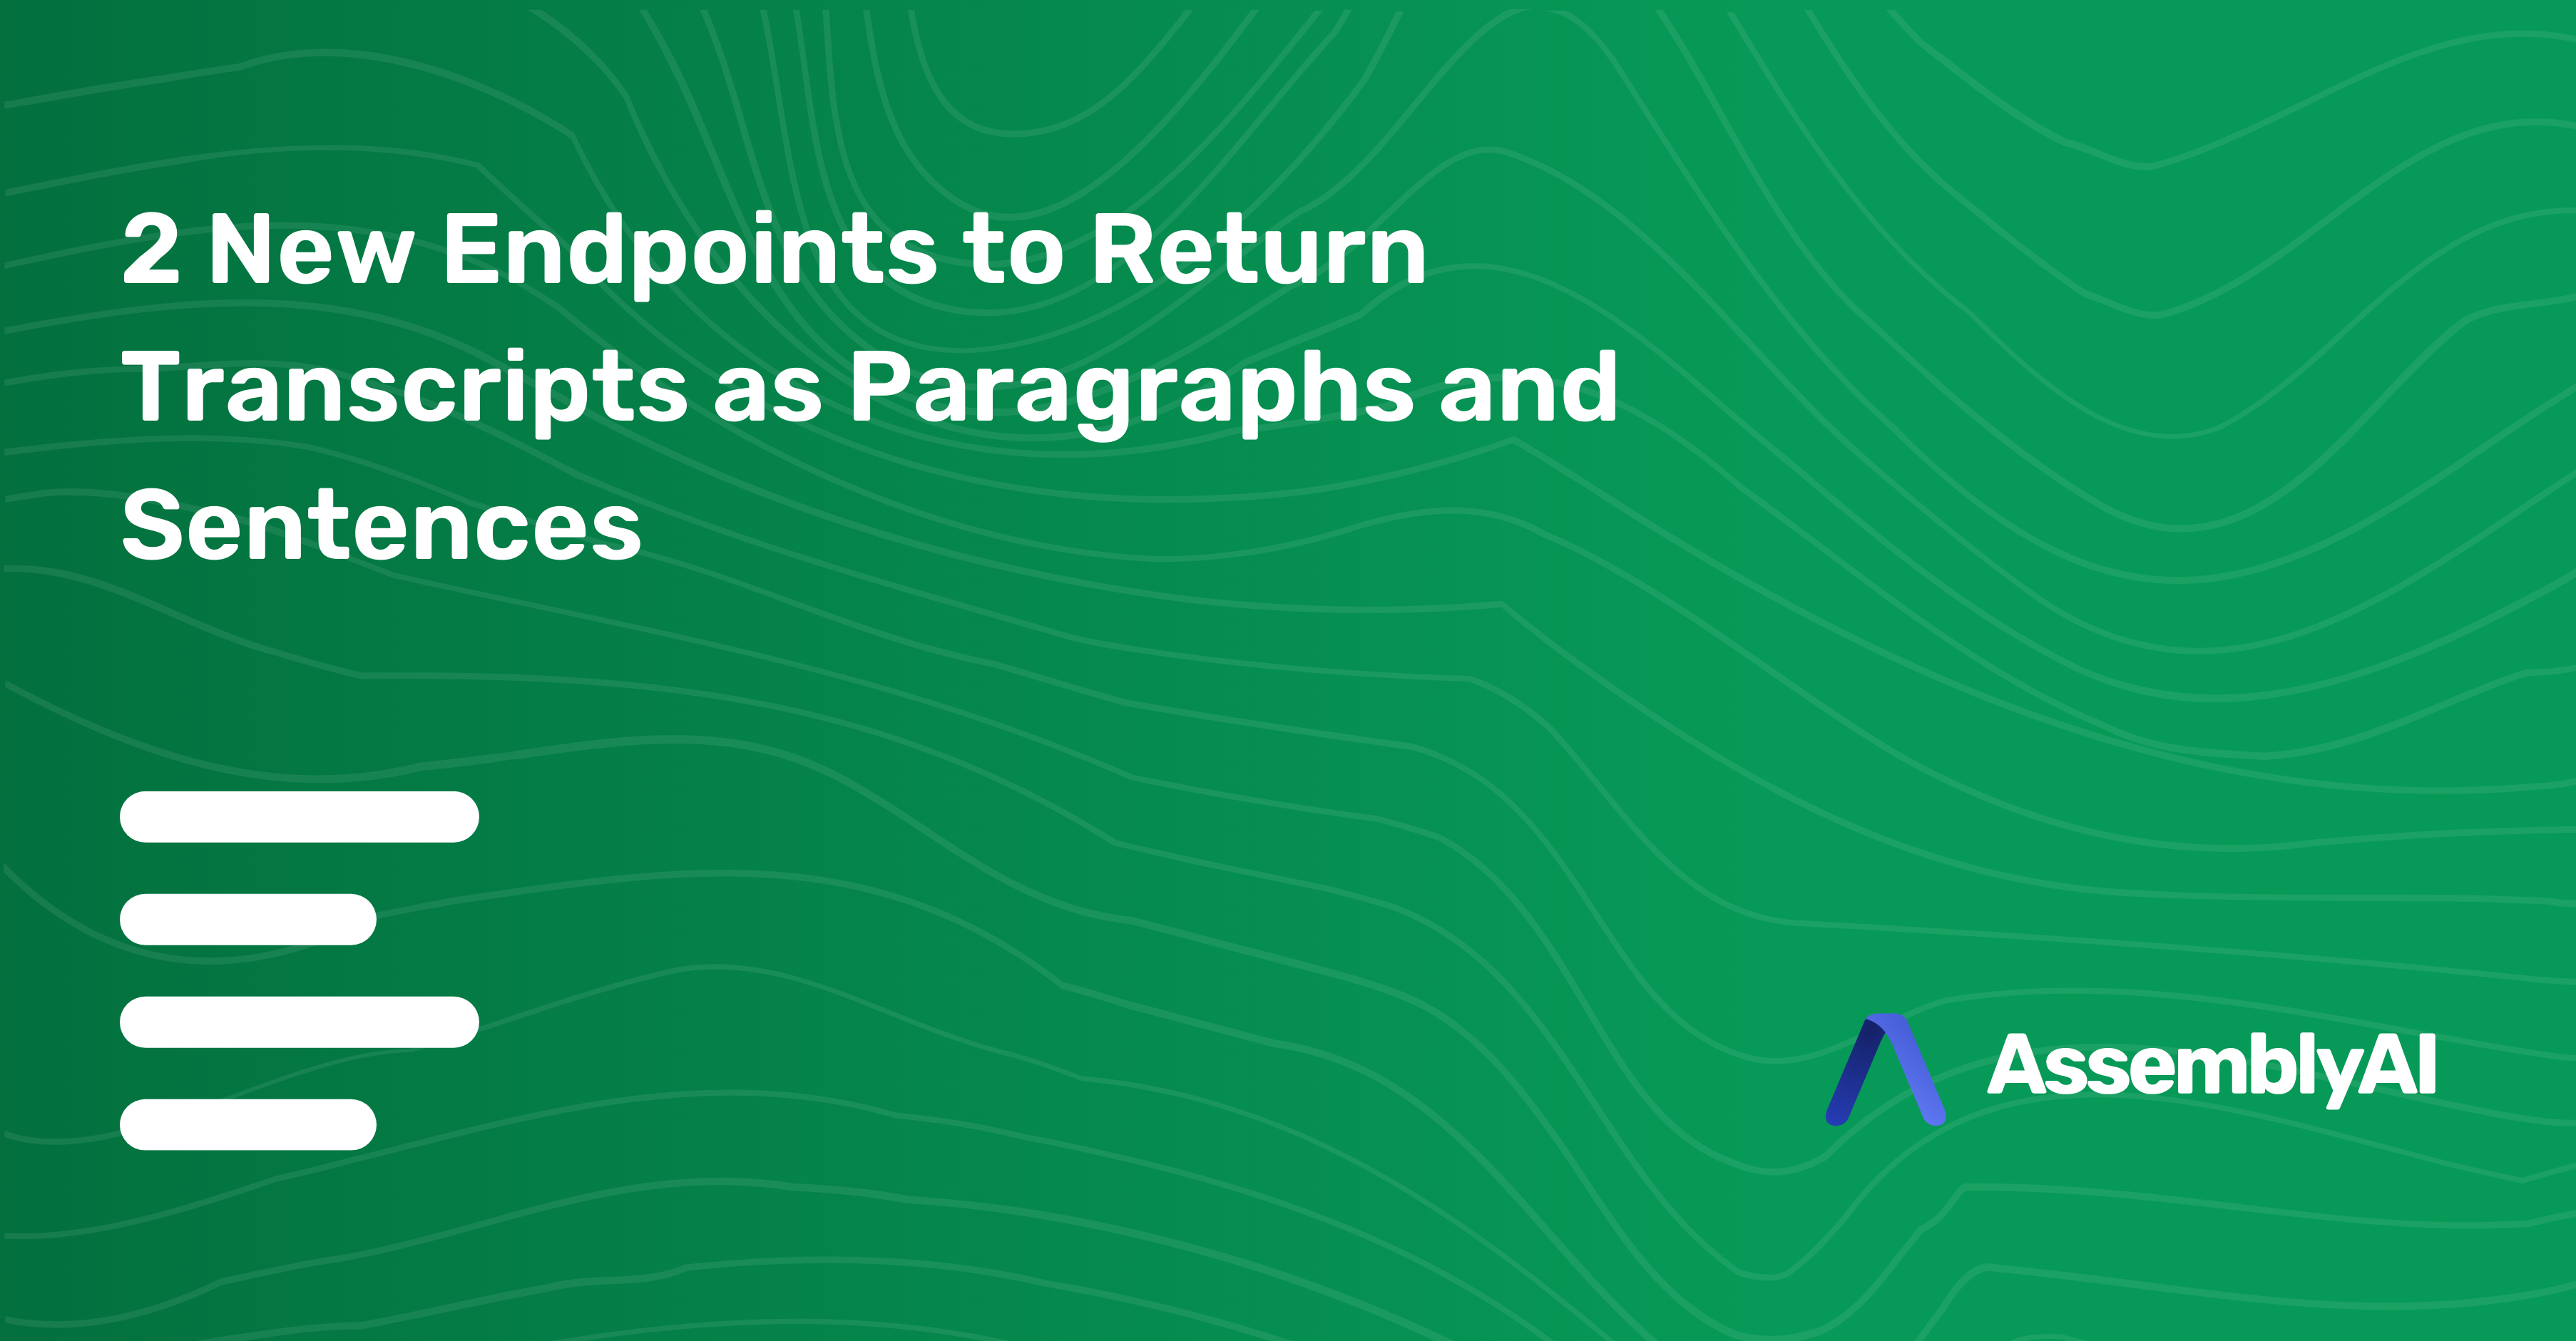 2 New Endpoints to Return Transcripts as Paragraphs and Sentences